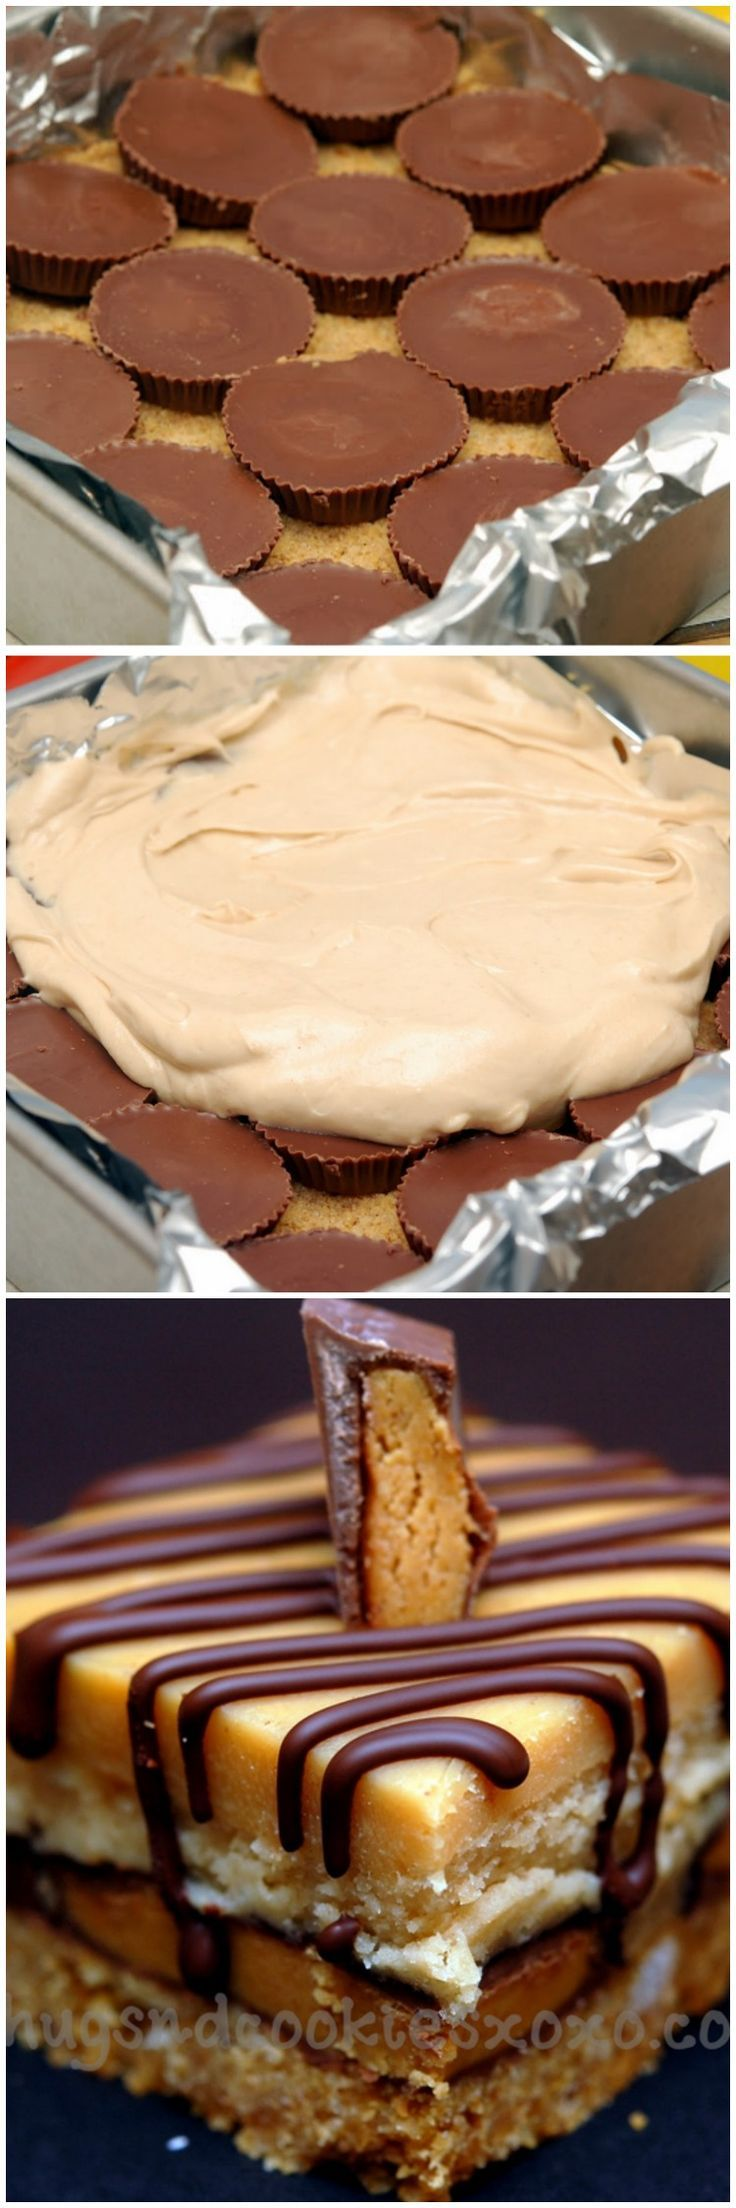 Celebrate National Peanut Butter day with peanut butter cup cheesecake bars!